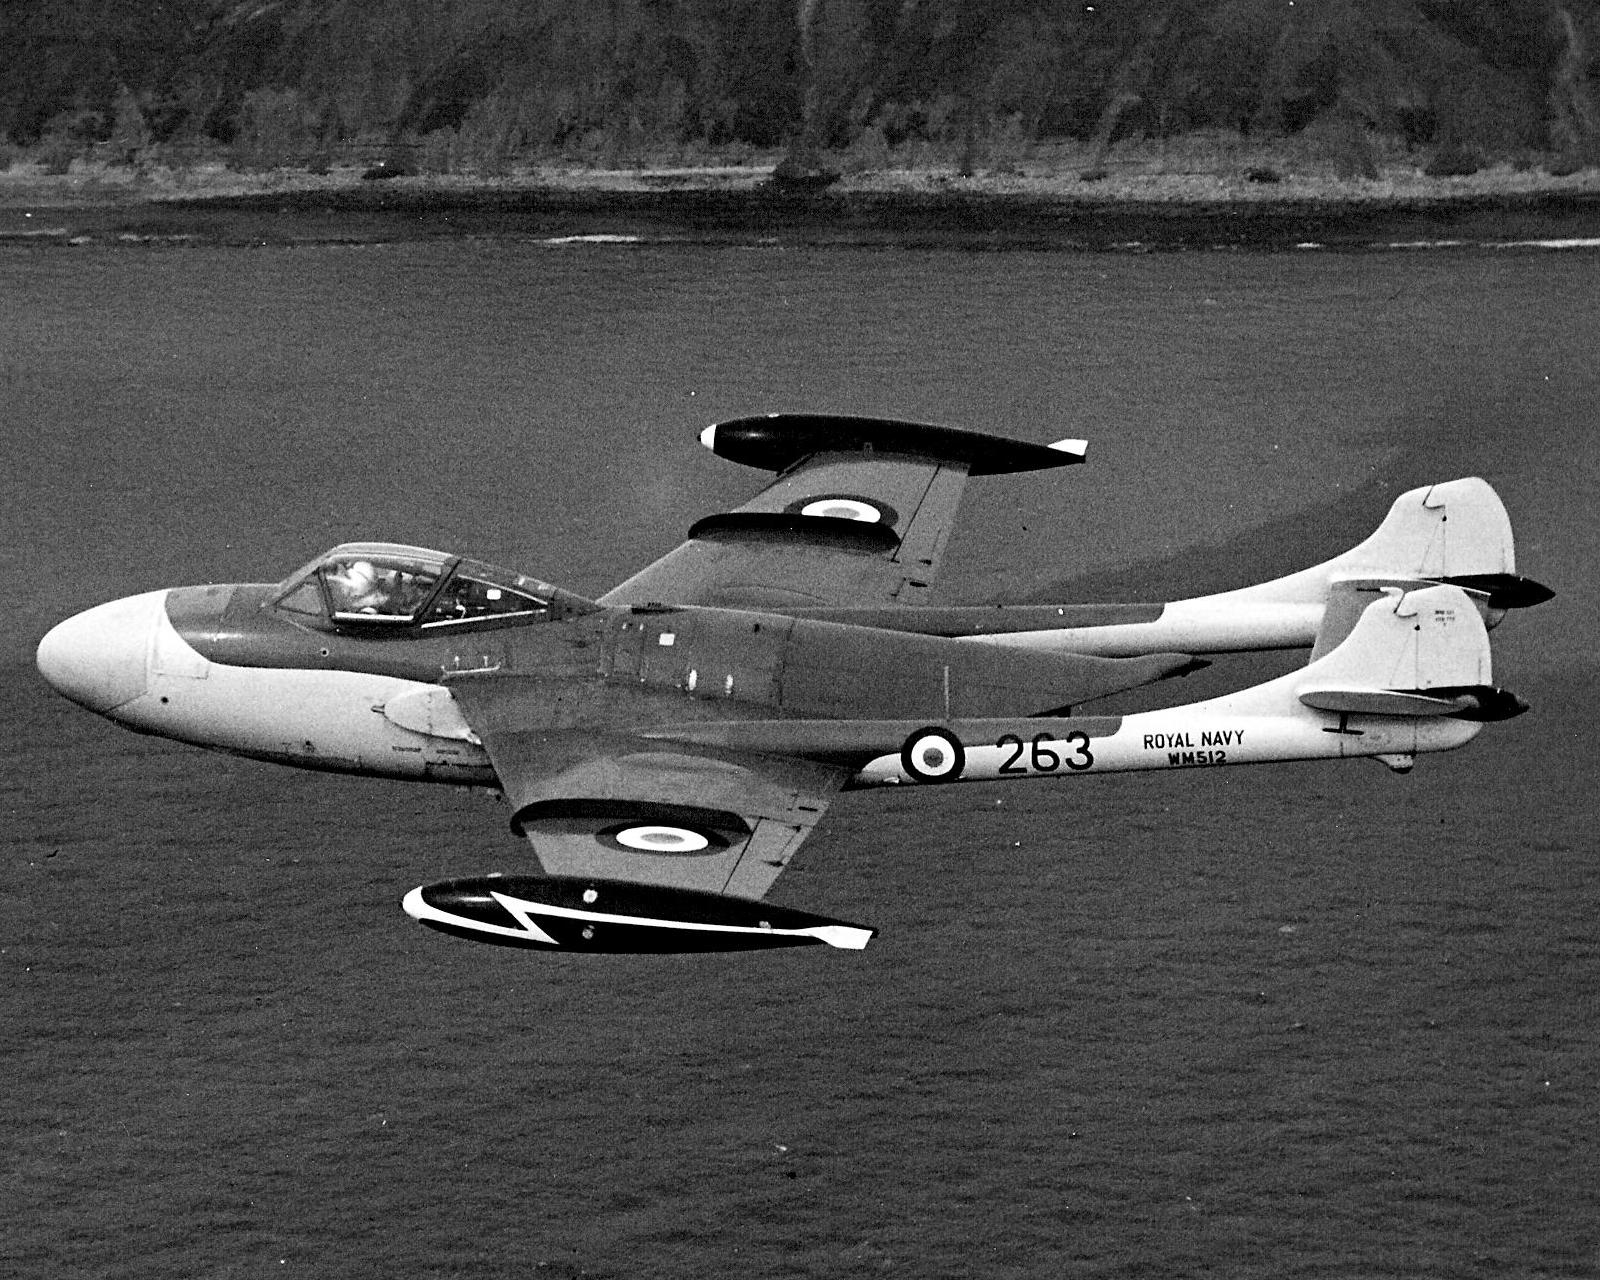 De Havilland DH-112 Sea Venom FAW.20 de la Royal Navy